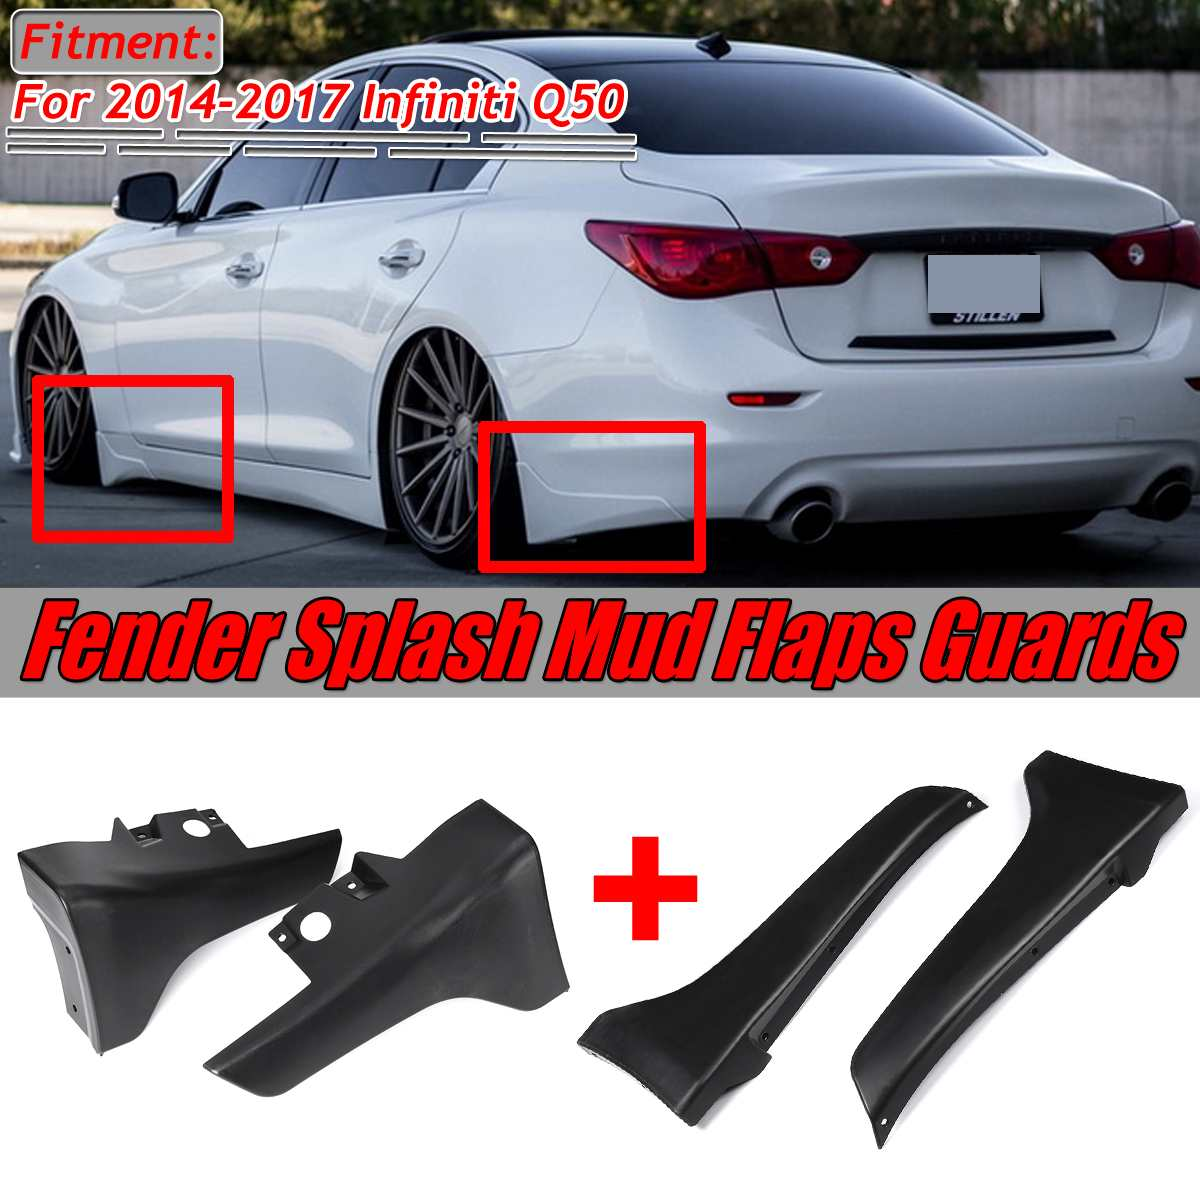 Black Q50 Front/Rear Bumper Lip Car For Fender Splash Mud Flaps Guards Guard Angle Corner Protection For Infiniti Q50 2014-2017